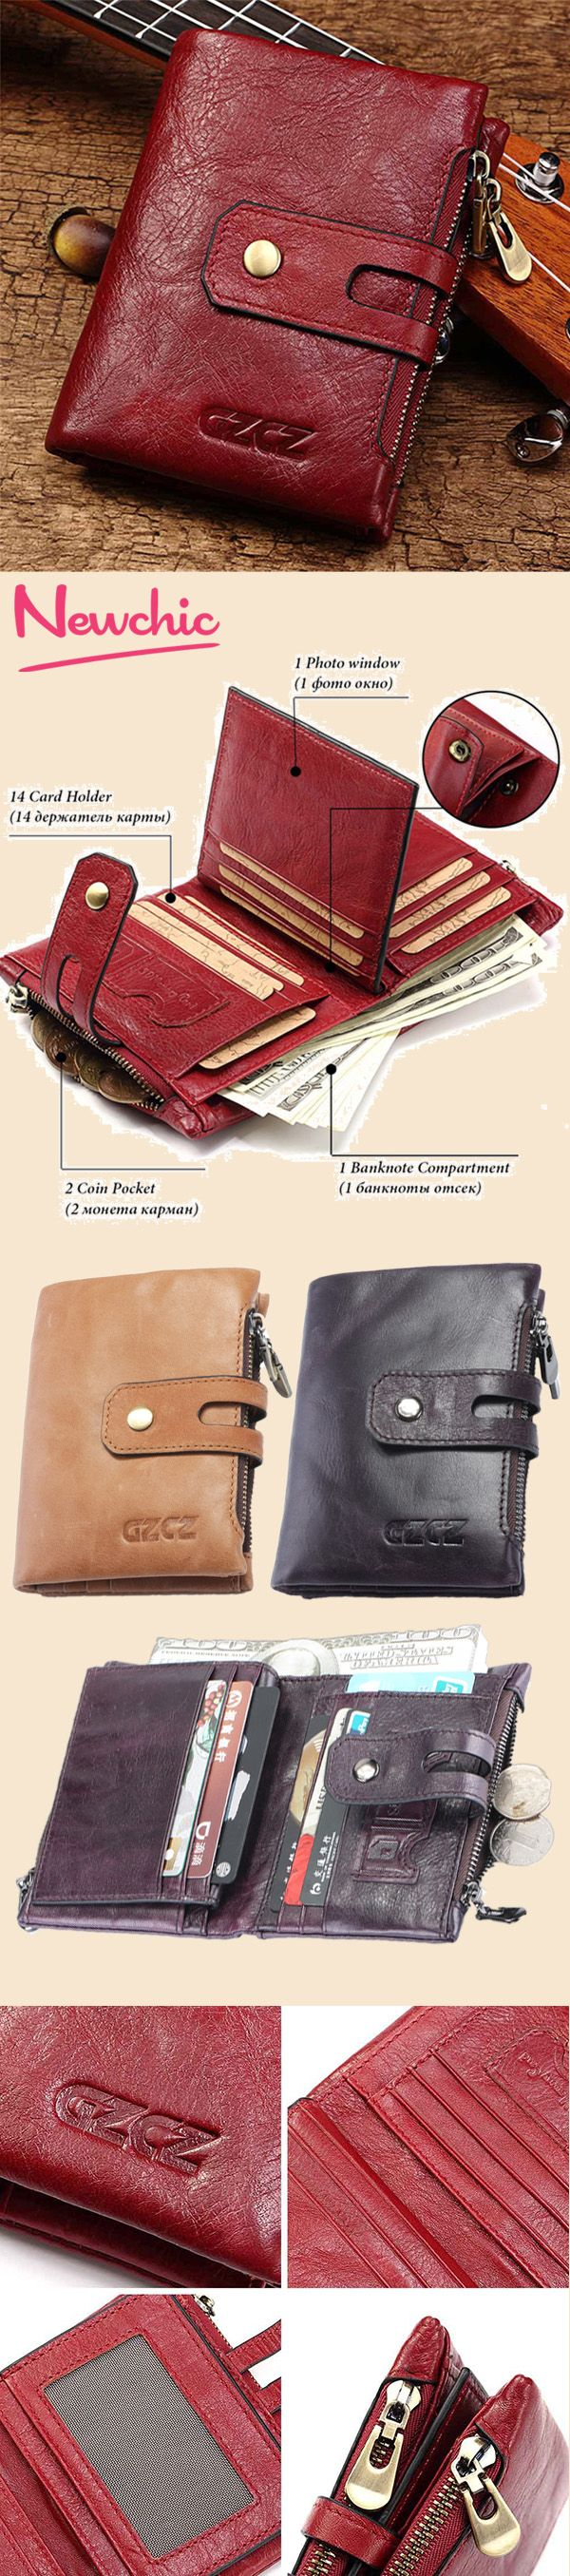 a34a2c696ddbc0 【US$28.56】Genuine Leather Bifold Wallet Female Small Wallet Money Bag Coin  Purse Card Holder #moneybags #wallets #cardwallet #bagsandpurse